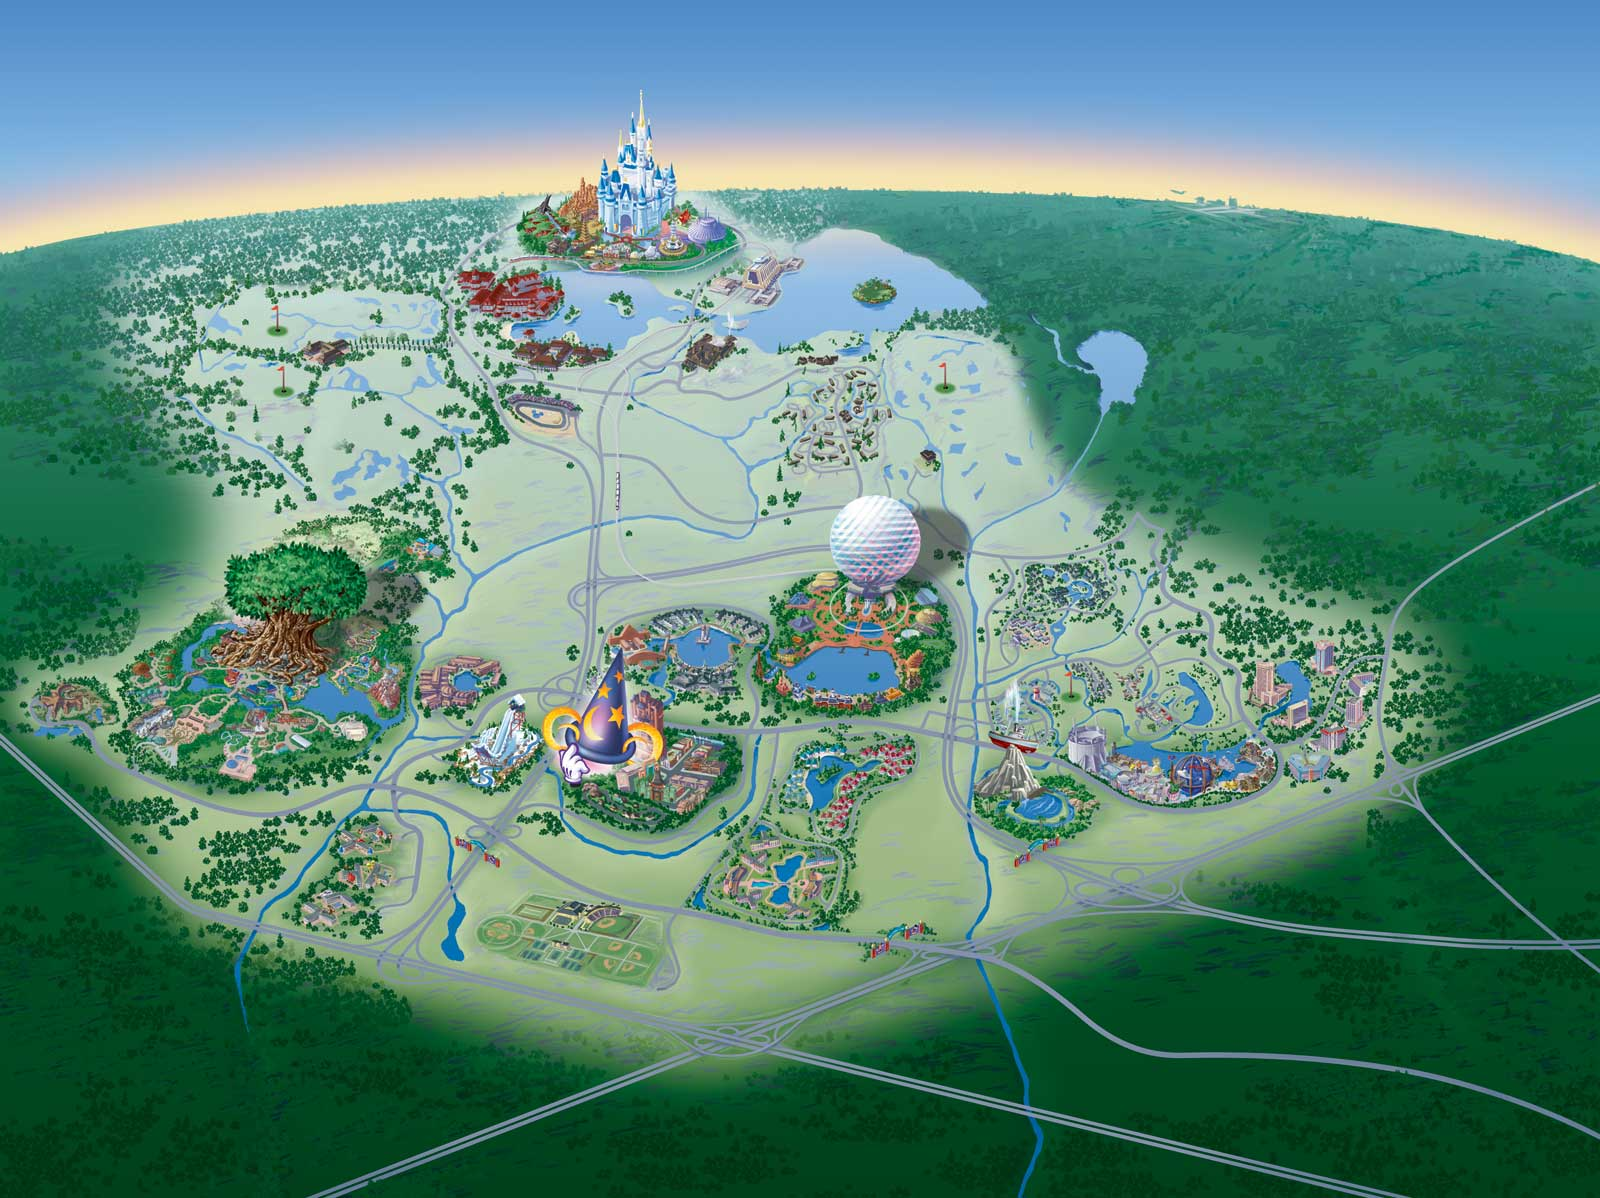 Map of Walt Disney World Resort - wdwinfo.com